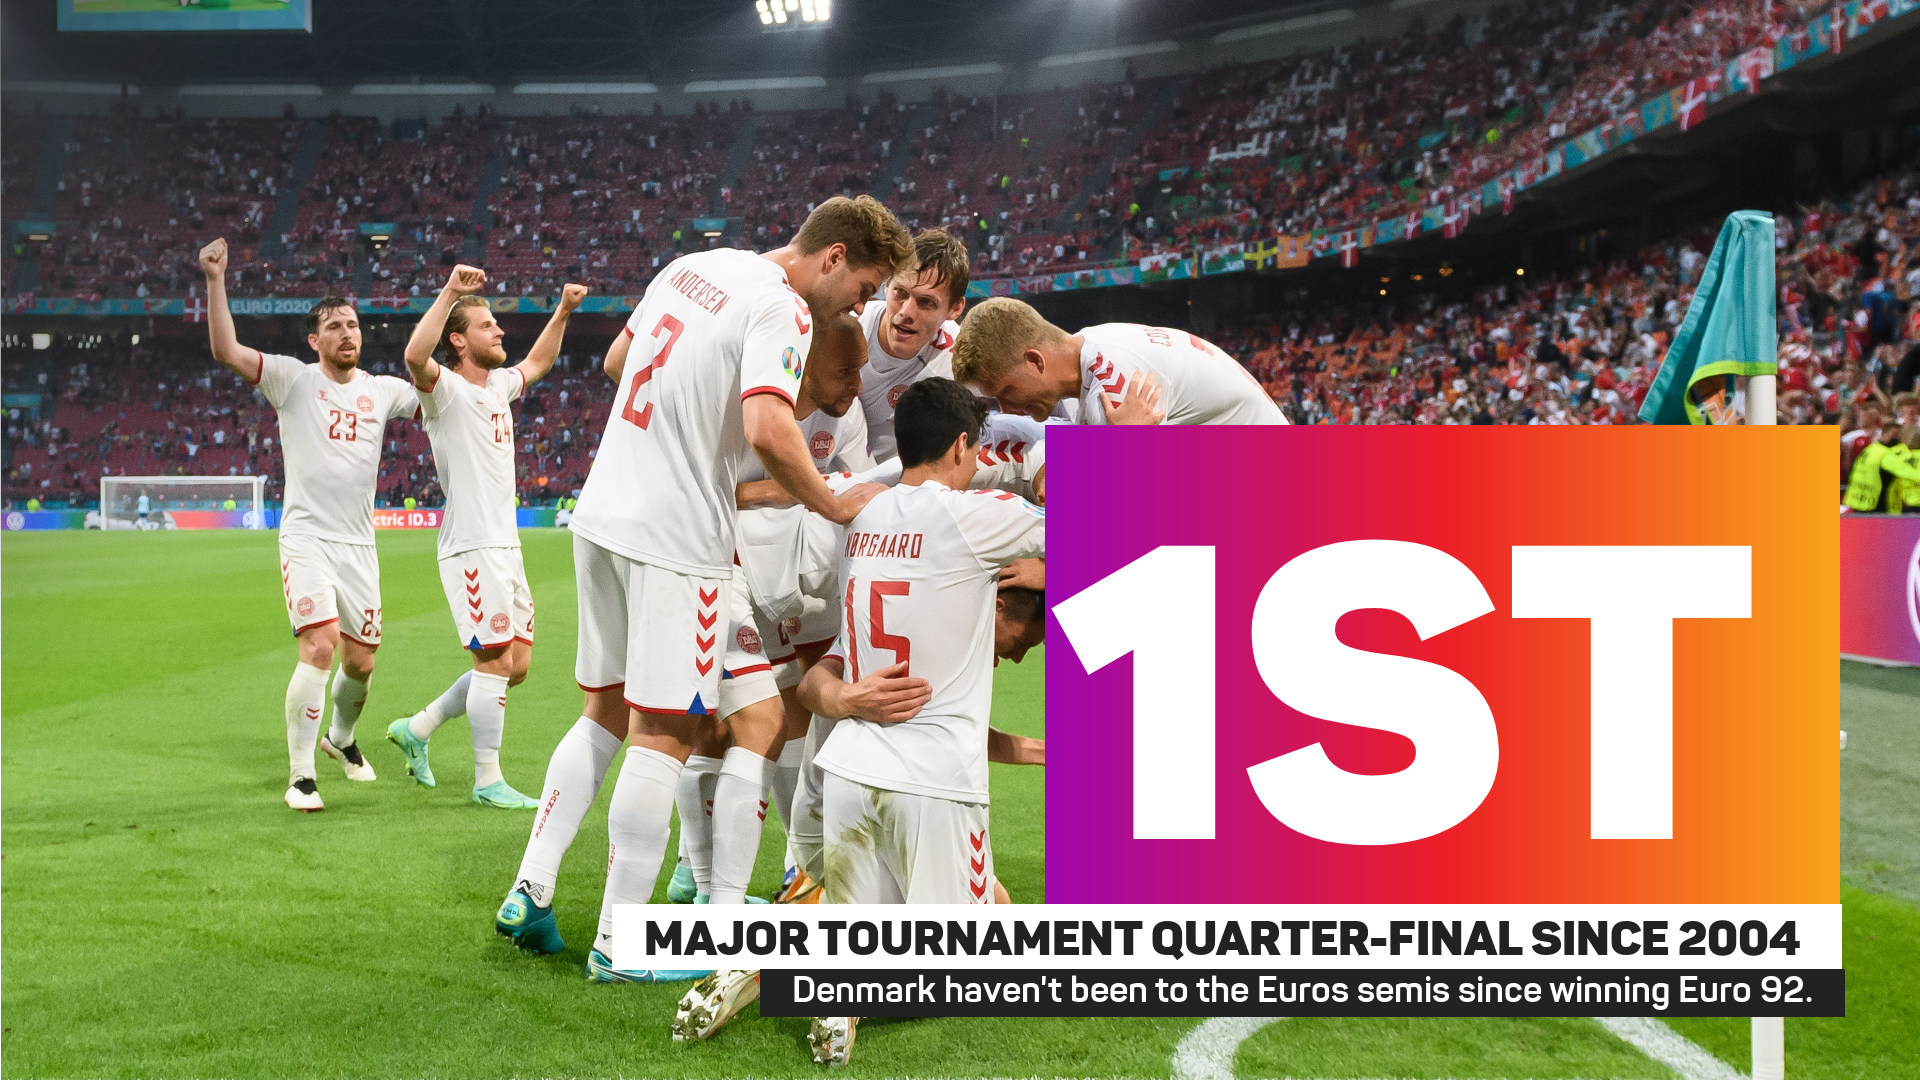 Denmark are into the quarter-finals for the first time since Euro 2004